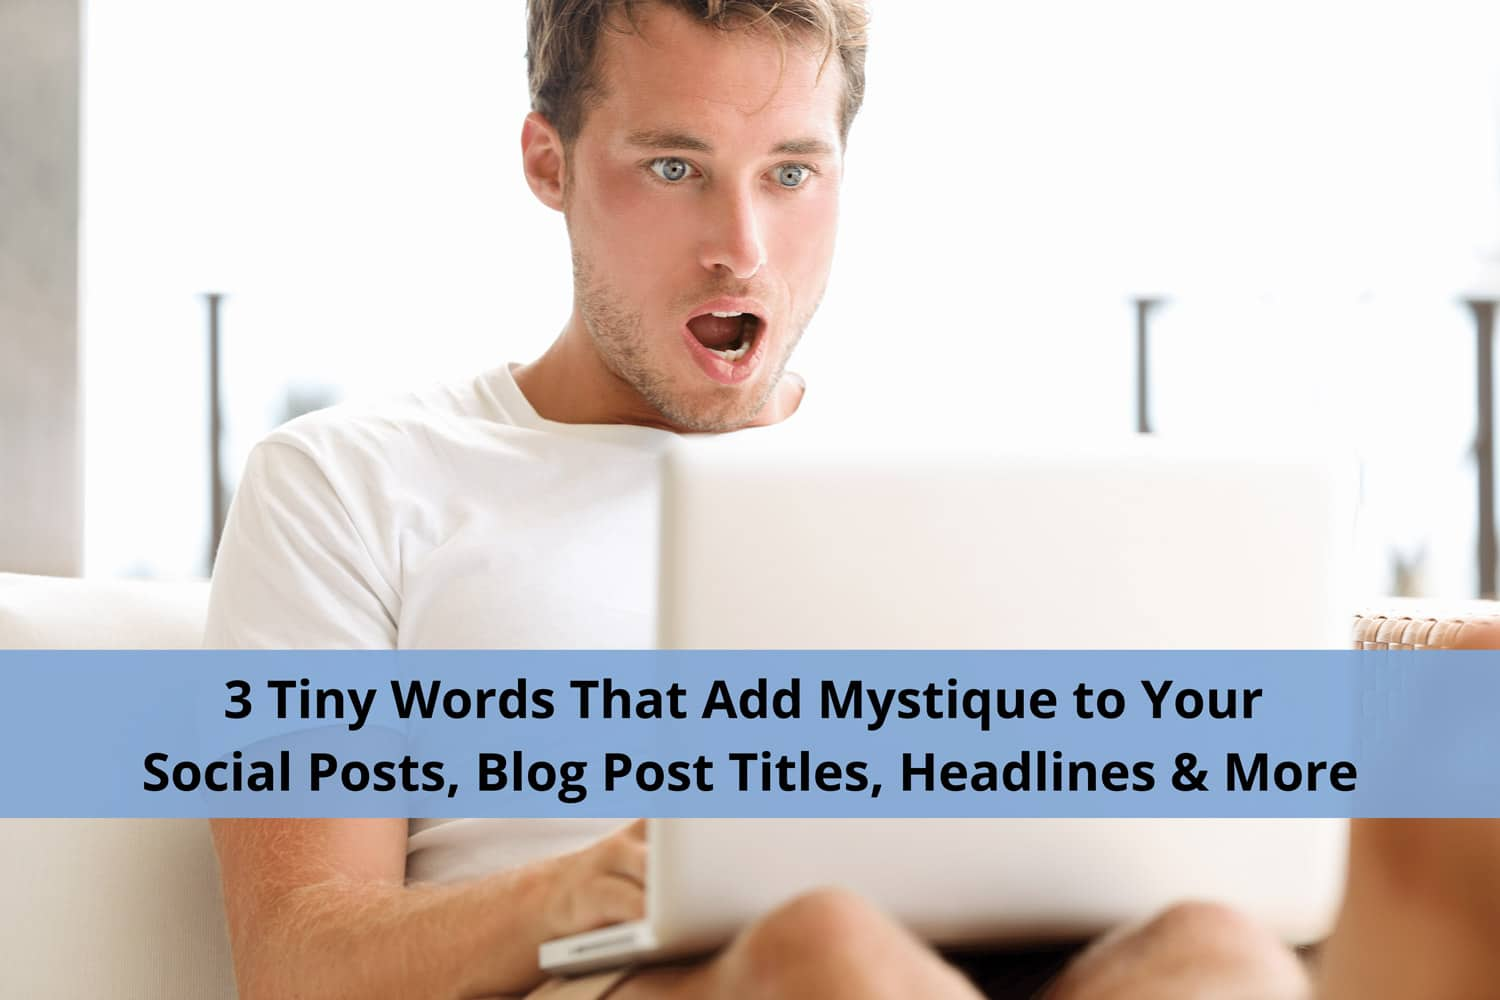 3 Tiny Words That Add Mystique to Your Social Posts, Blog Post Titles, Headlines & More